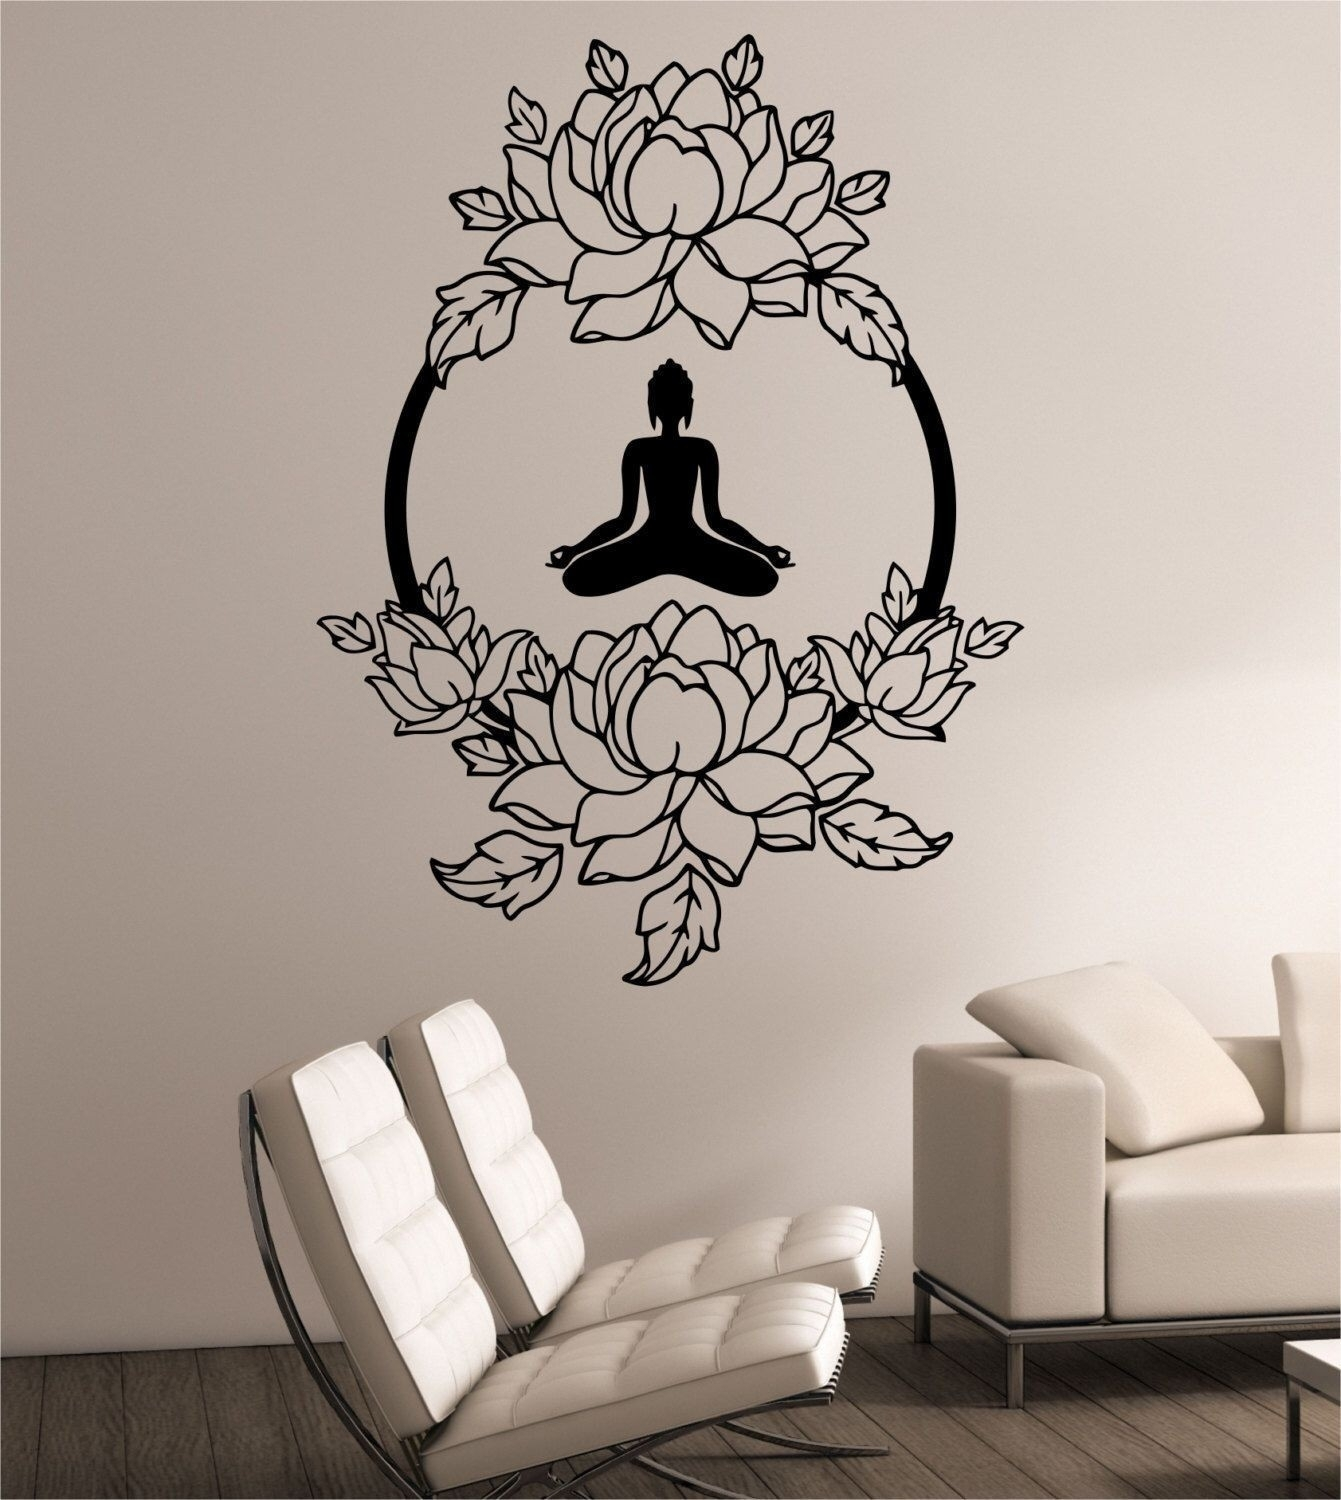 Music Wall Decals Amazon Awesome 31 Fresh Amazon Wall Art with regard to Music Wall Art (Image 10 of 20)